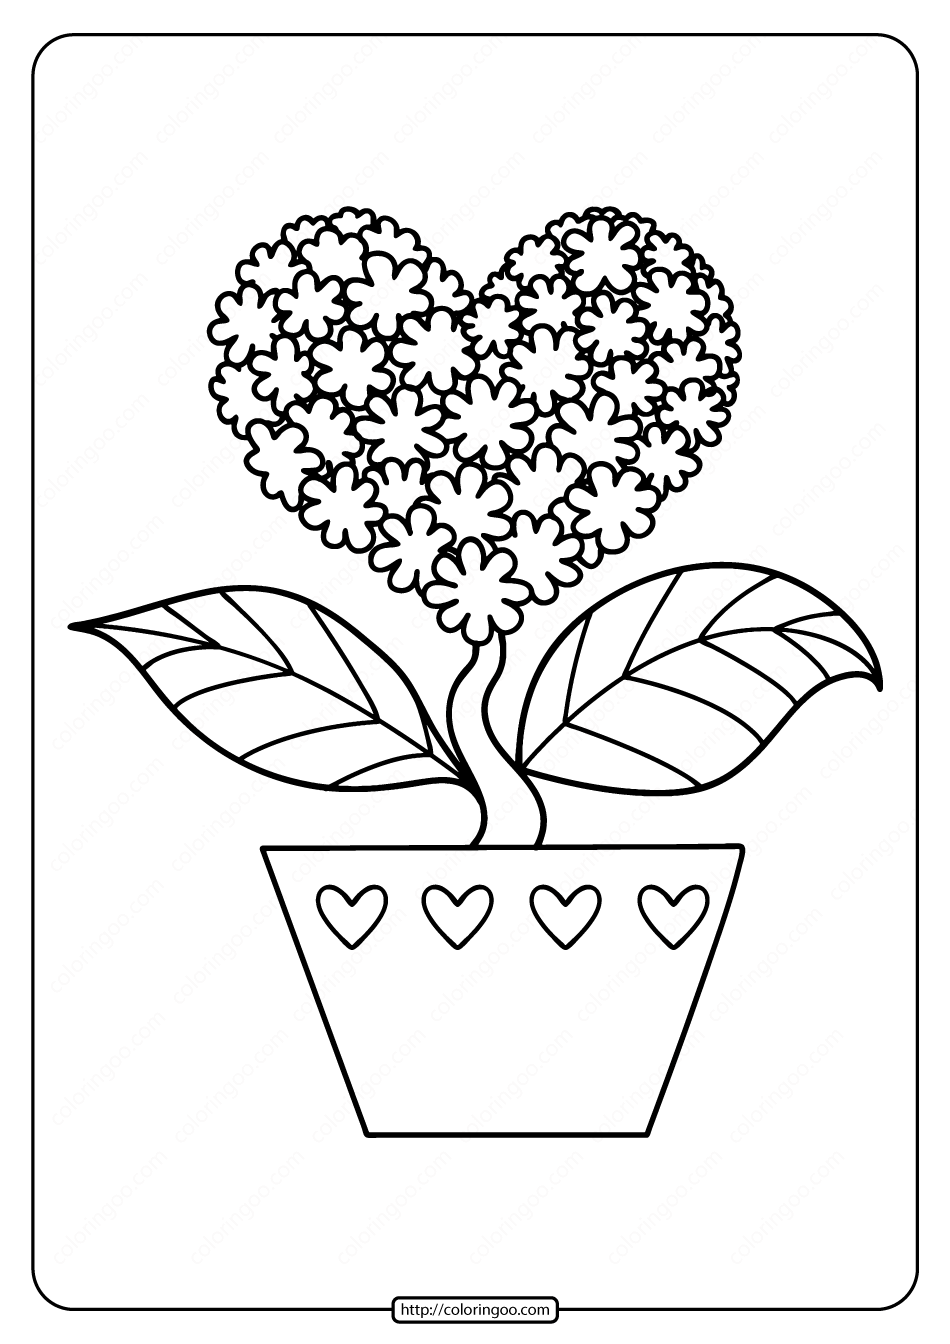 little heart coloring pages little heart coloring pages little coloring heart pages